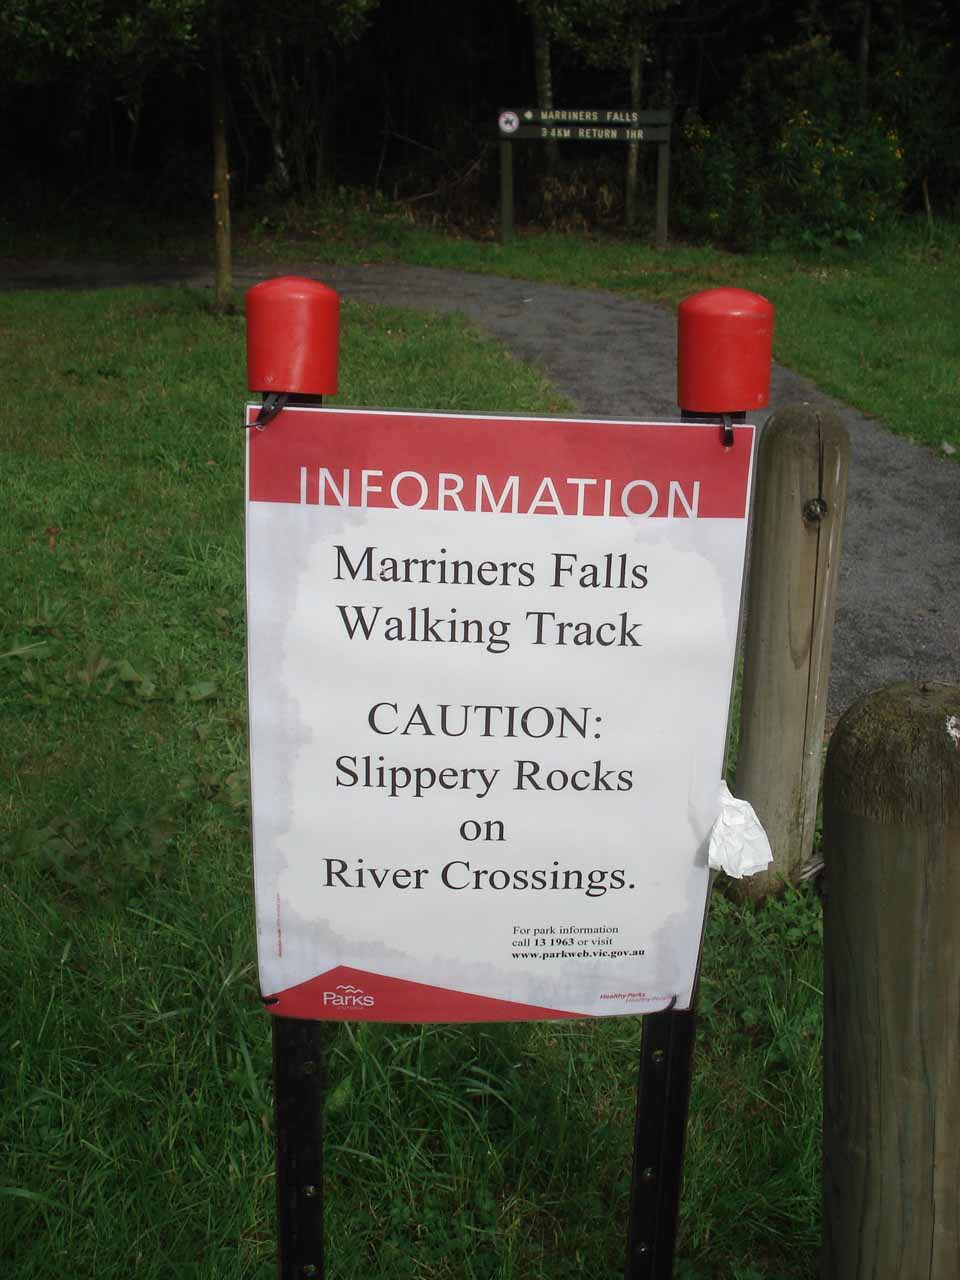 This paper sign was not kidding about the river crossings